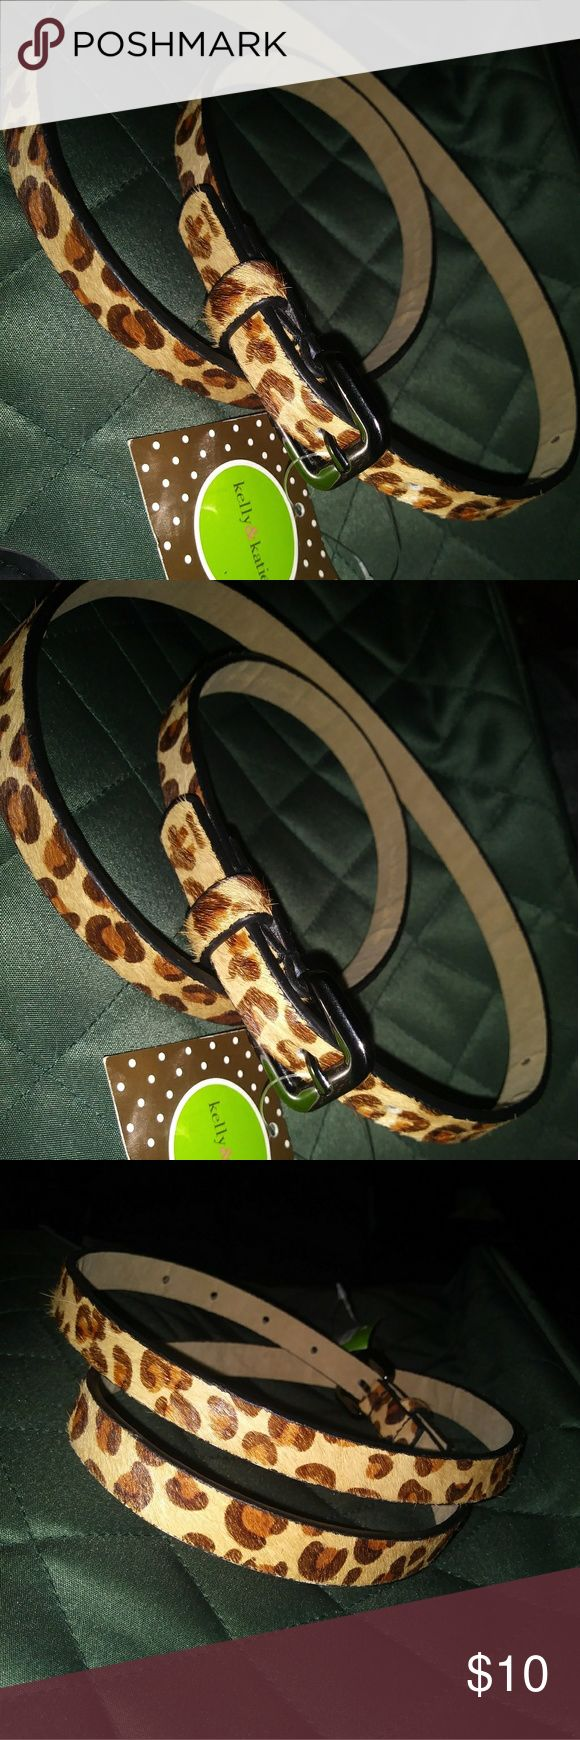 Animal Print Belt Animal print  Leopard print Cheetah print Kelly & Katie Accessories Belts